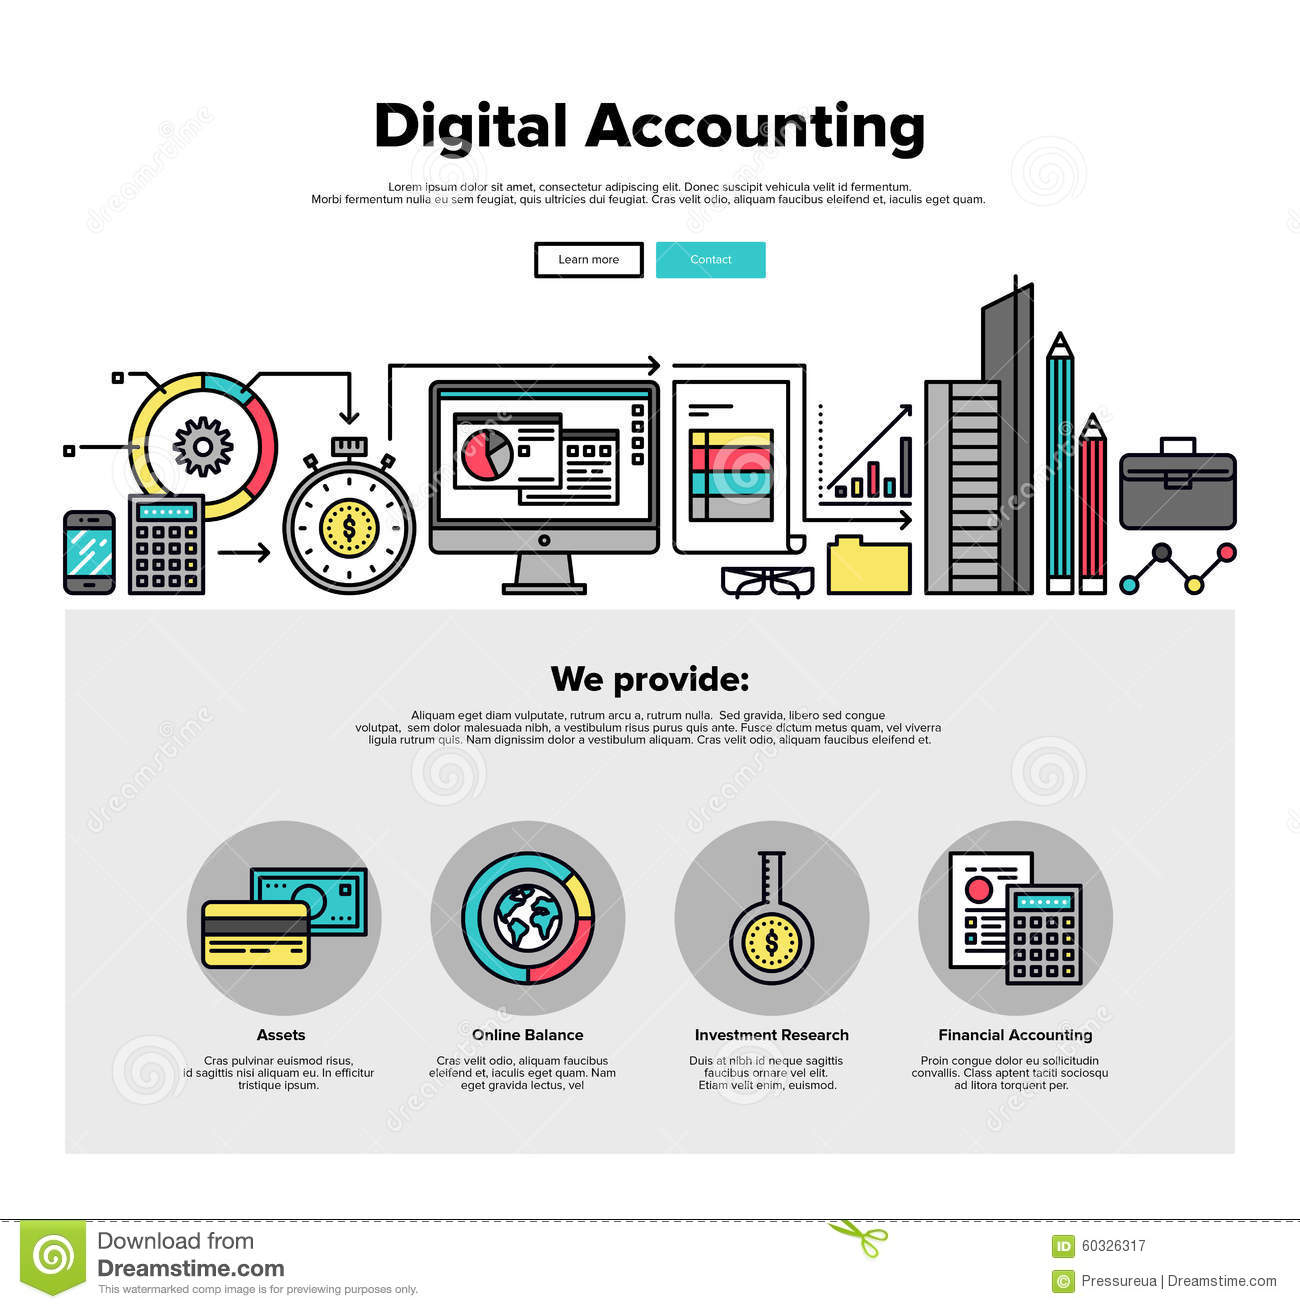 web design template with thin line icons of digital accounting service ...: http://www.dreamstime.com/stock-illustration-digital-accounting-flat-line-web-graphics-one-page-design-template-thin-icons-service-investment-research-business-data-image60326317